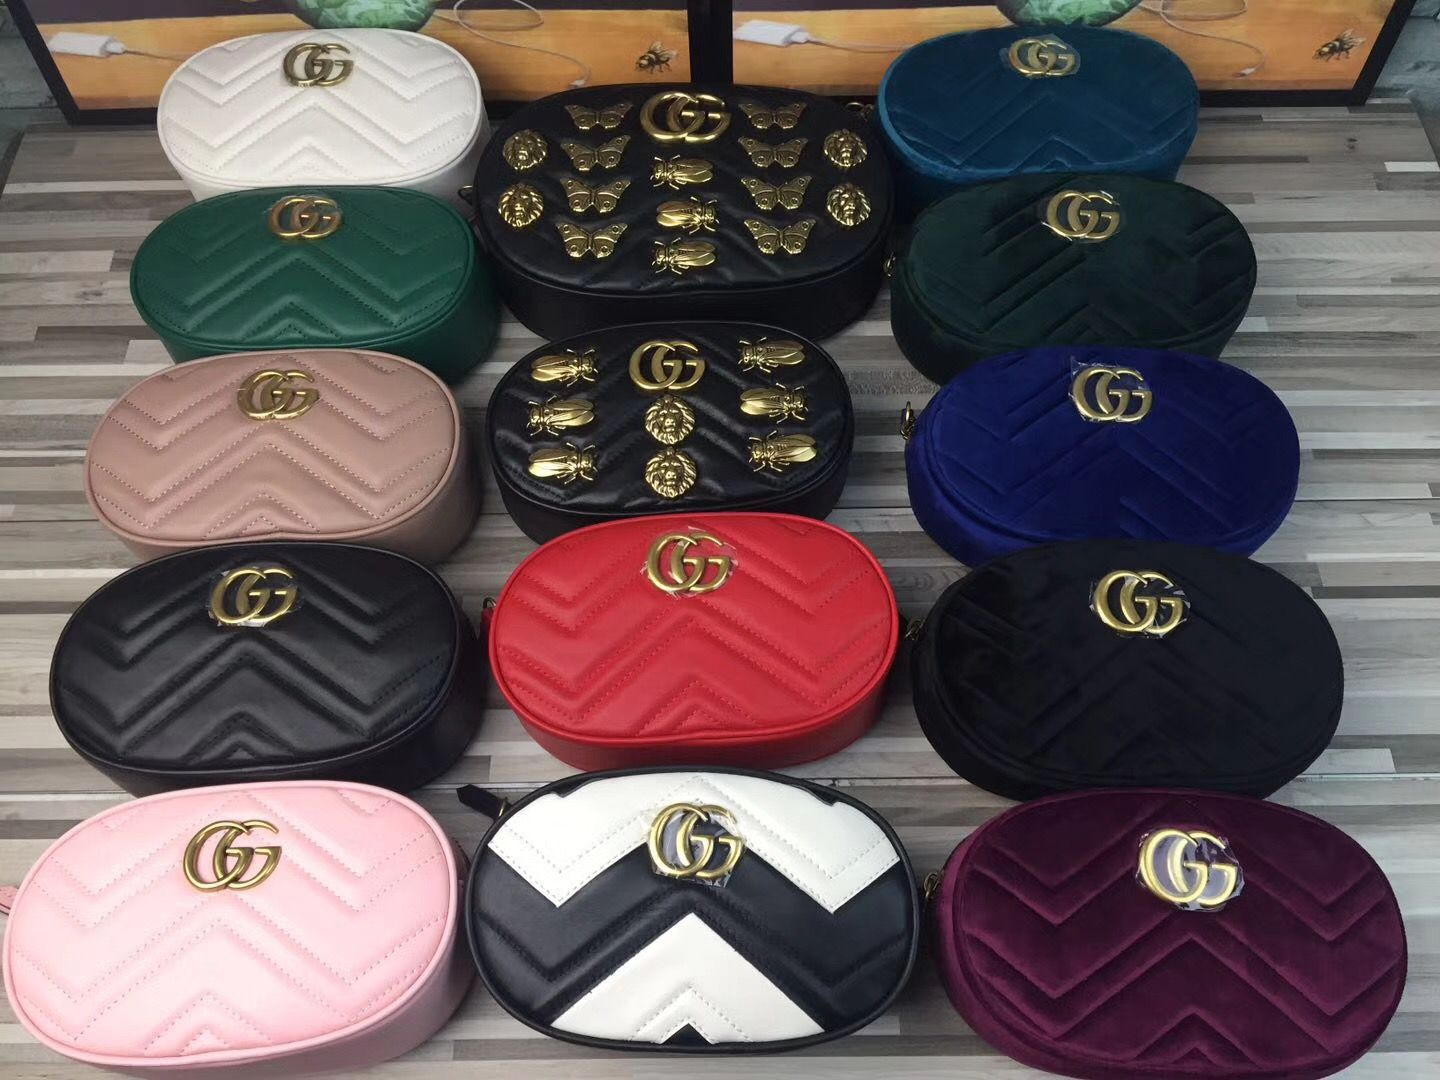 4513e0ca346b Gucci marmont waist belt bag original leather version | I want!!! in ...